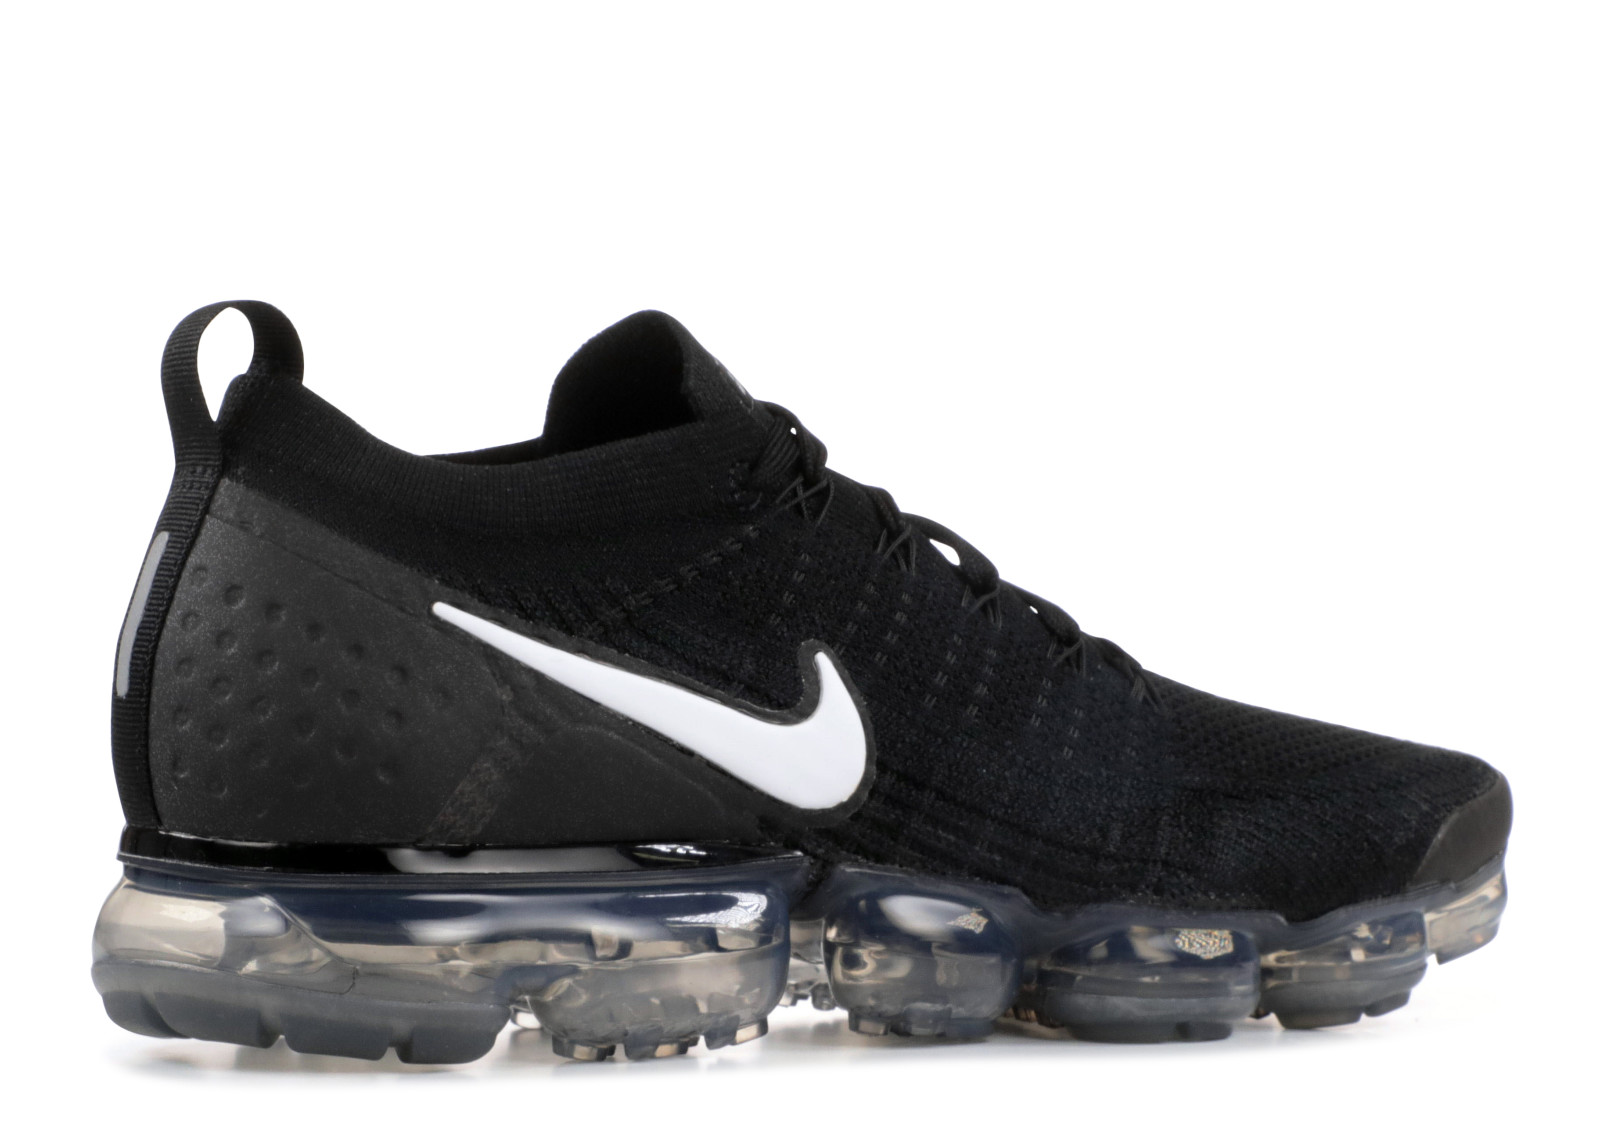 promo code 296a0 48f1a Nike Air Vapormax Flyknit 2 Black-White-Dark Grey